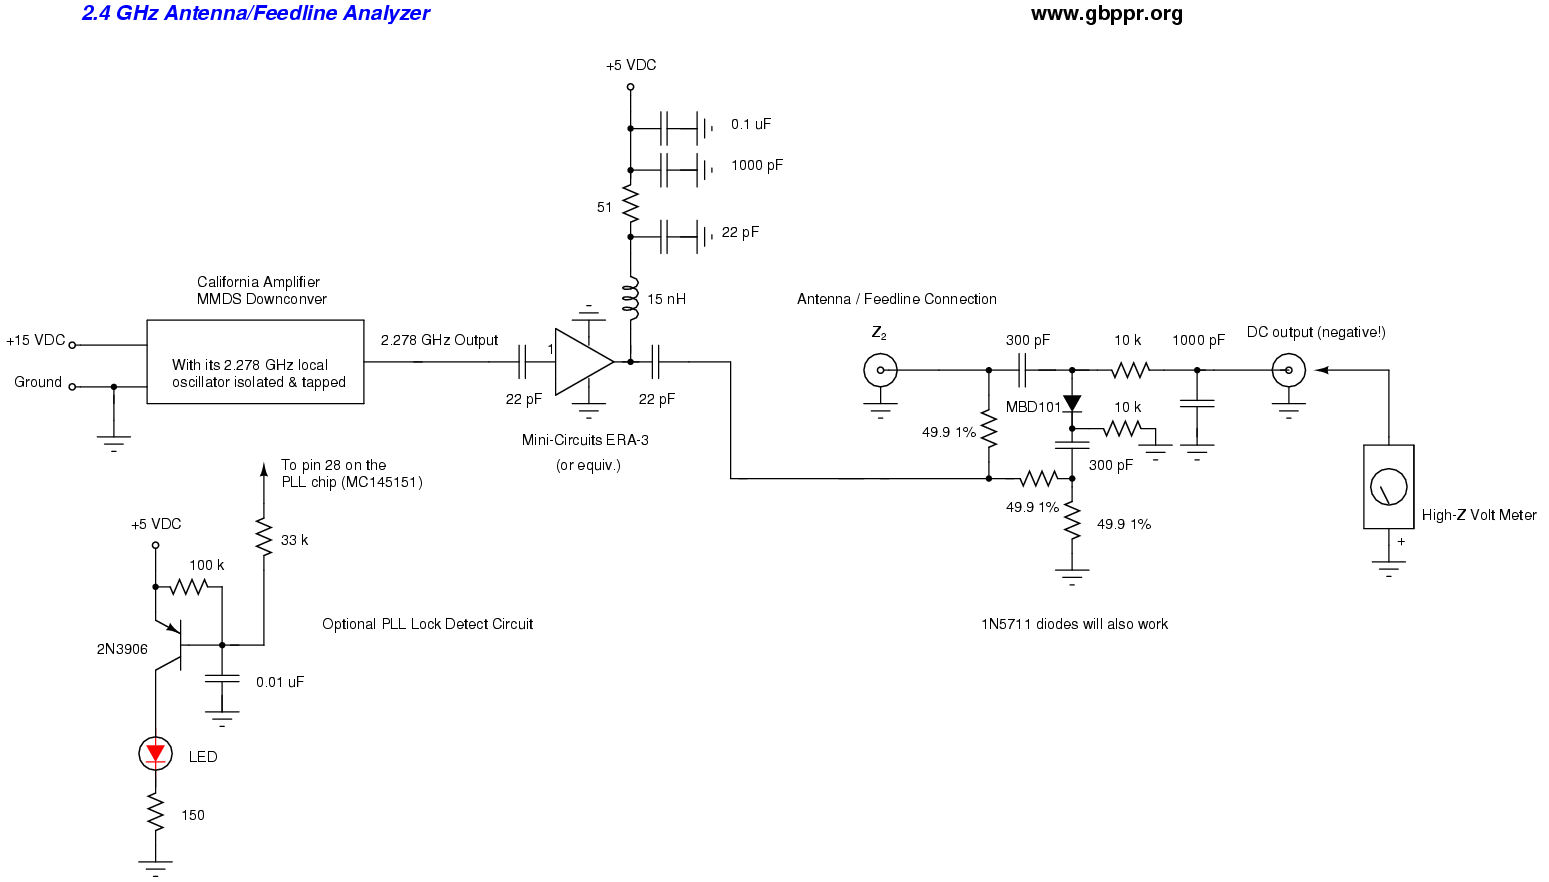 Homebrew Rf Test Equipment And Software Schematic Diagram Of Wlan Gps Circuit 24 Ghz Antenna Feedline Analyzer